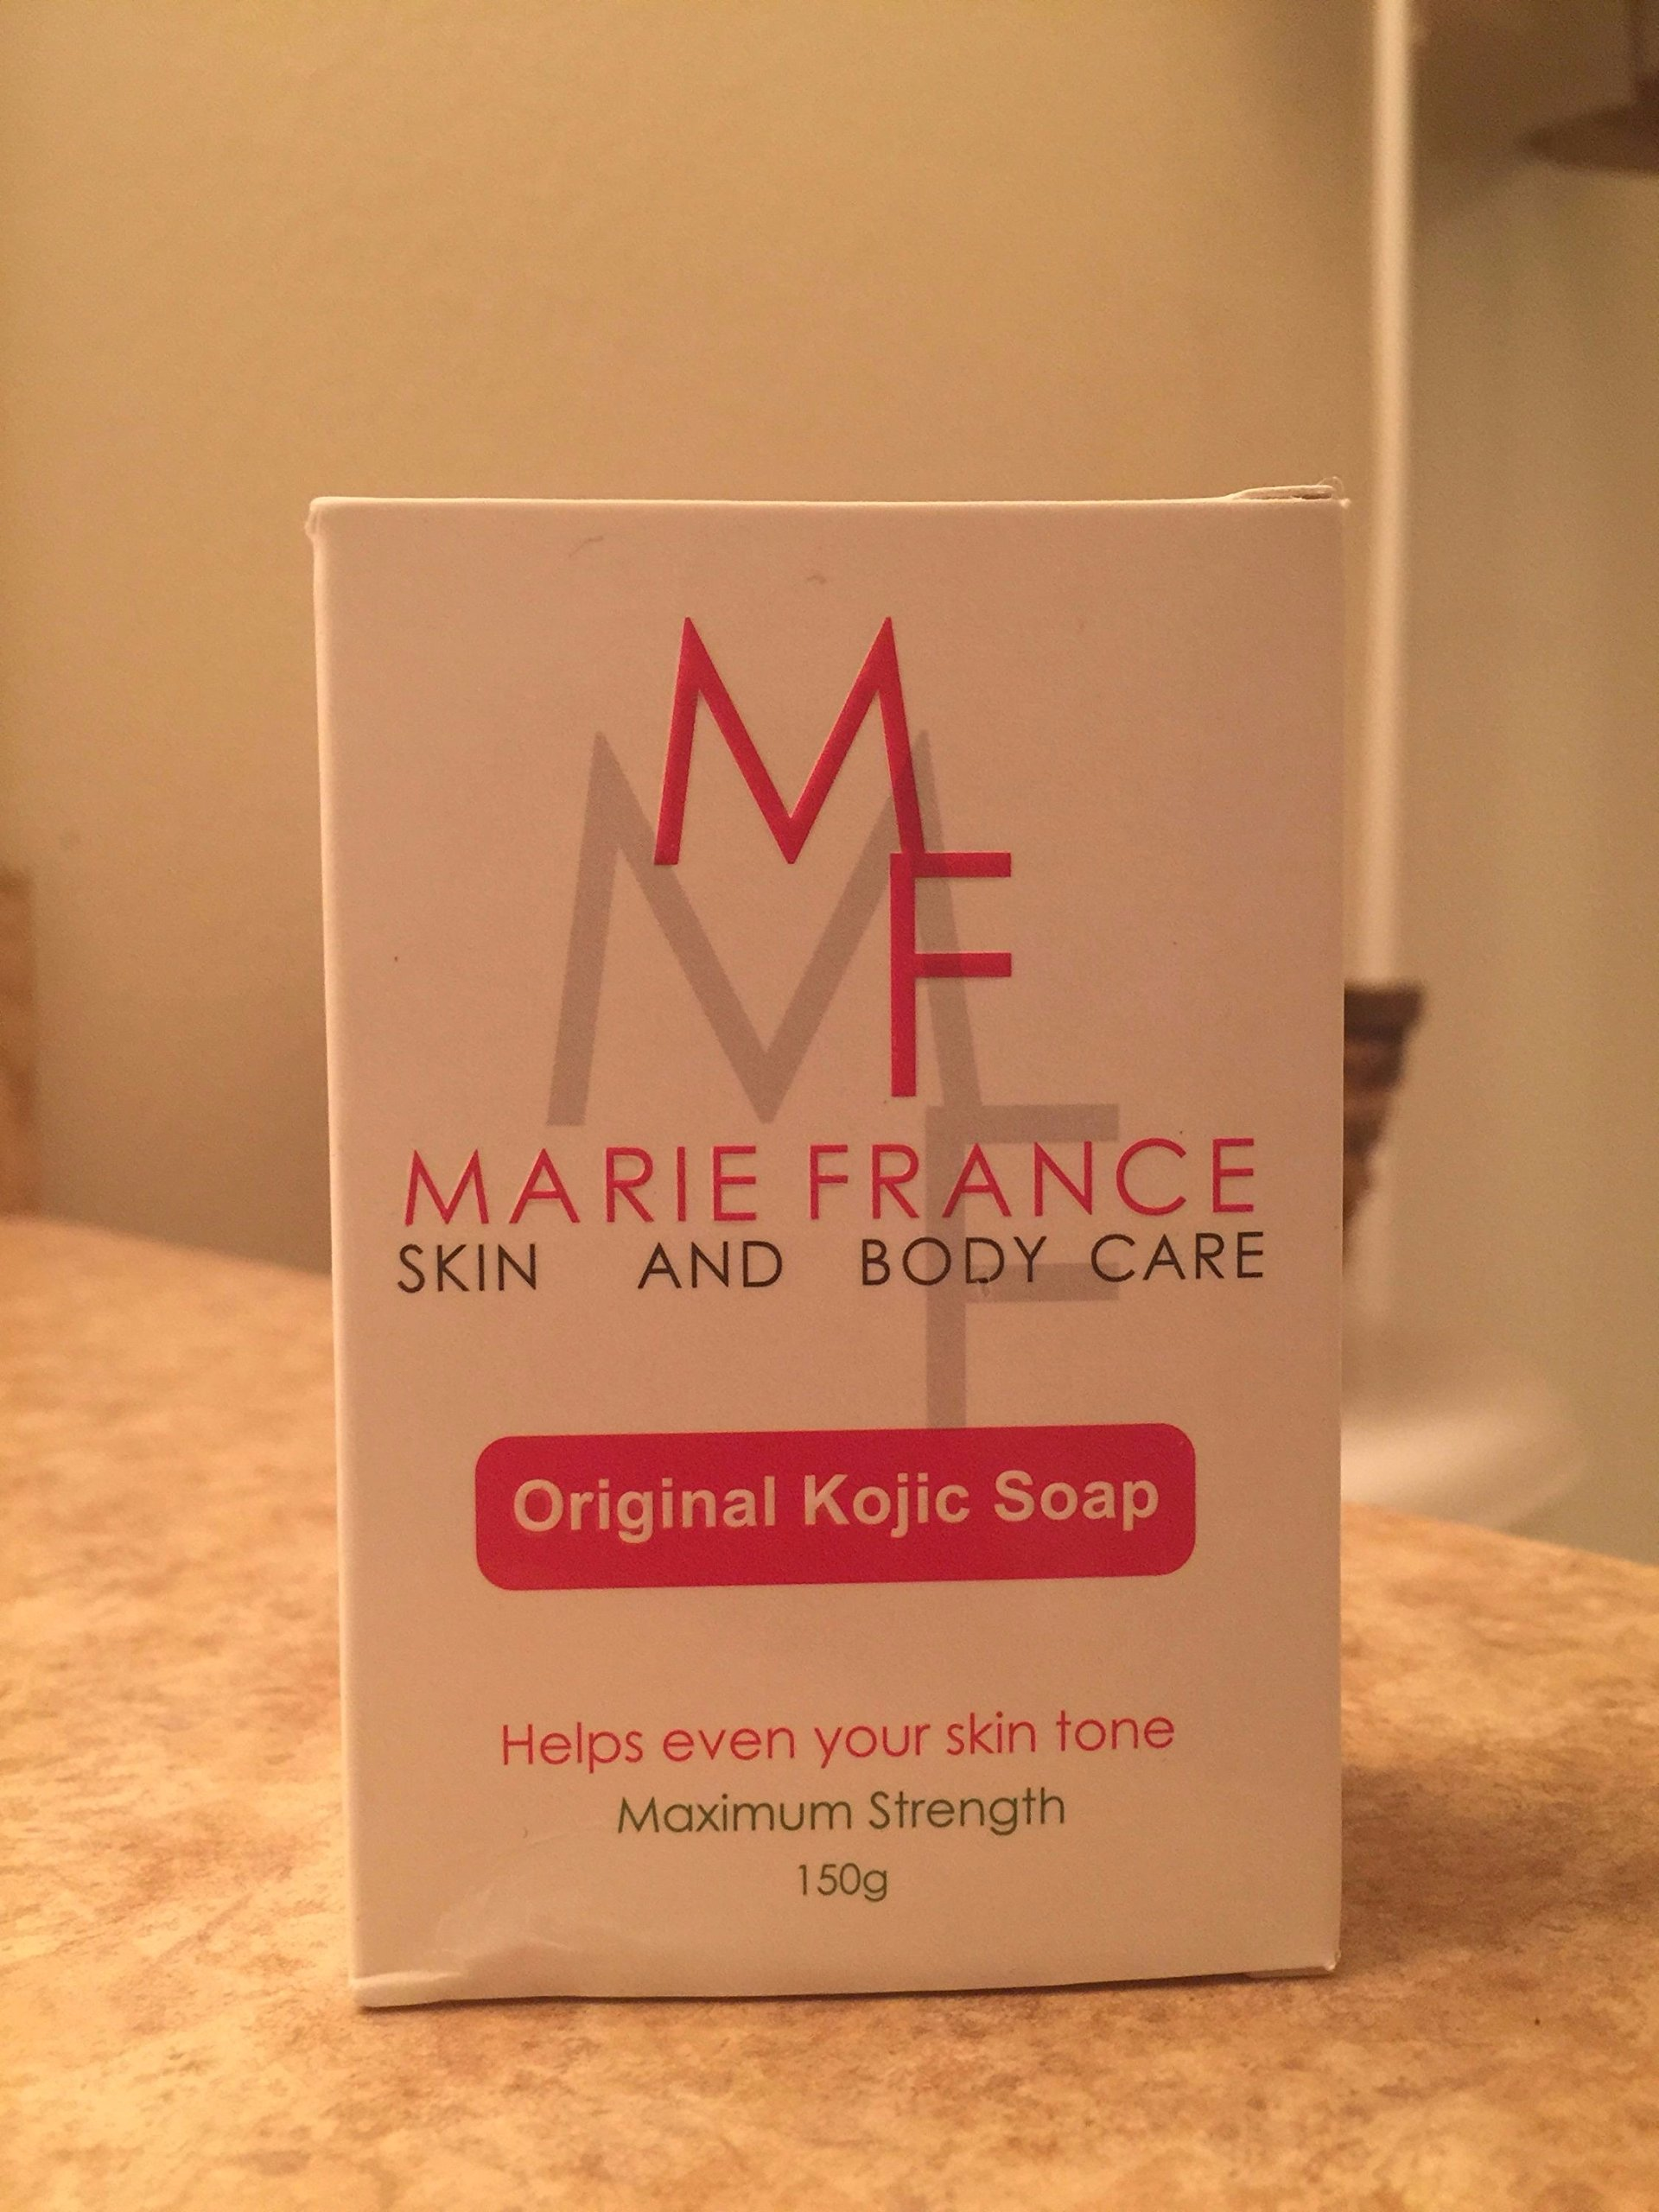 Marie France Professional Strength Kojic Soap 150g by Marie France Skin and Body Care (Image #5)